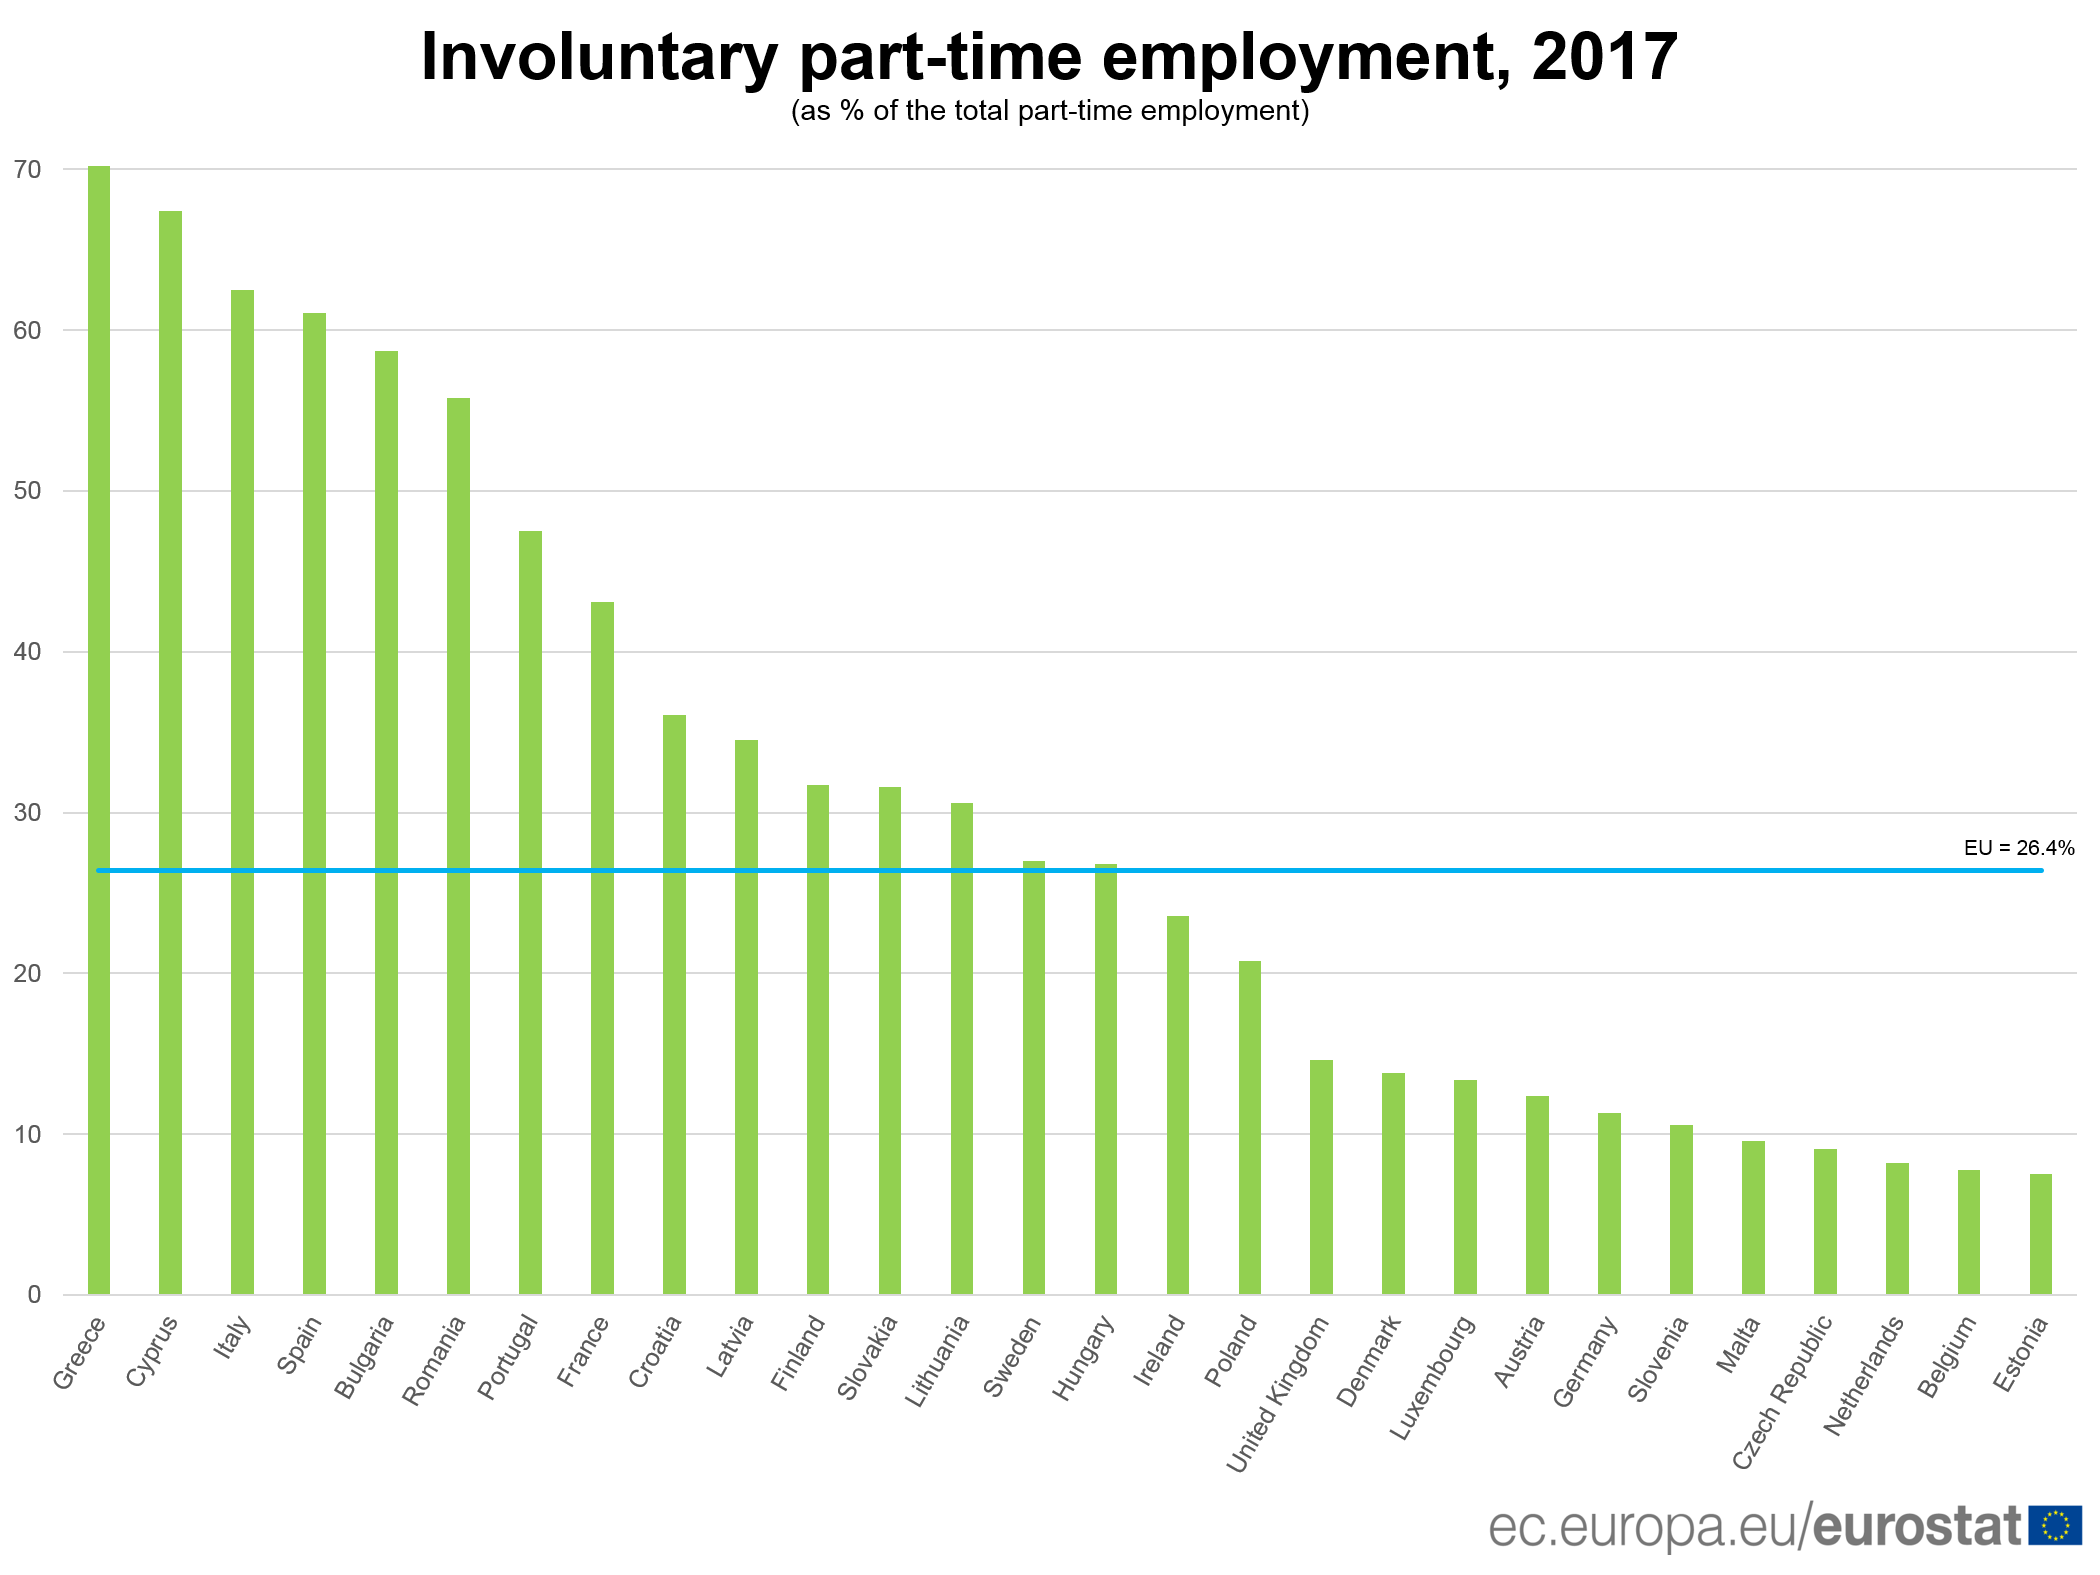 Involuntary part-time employment